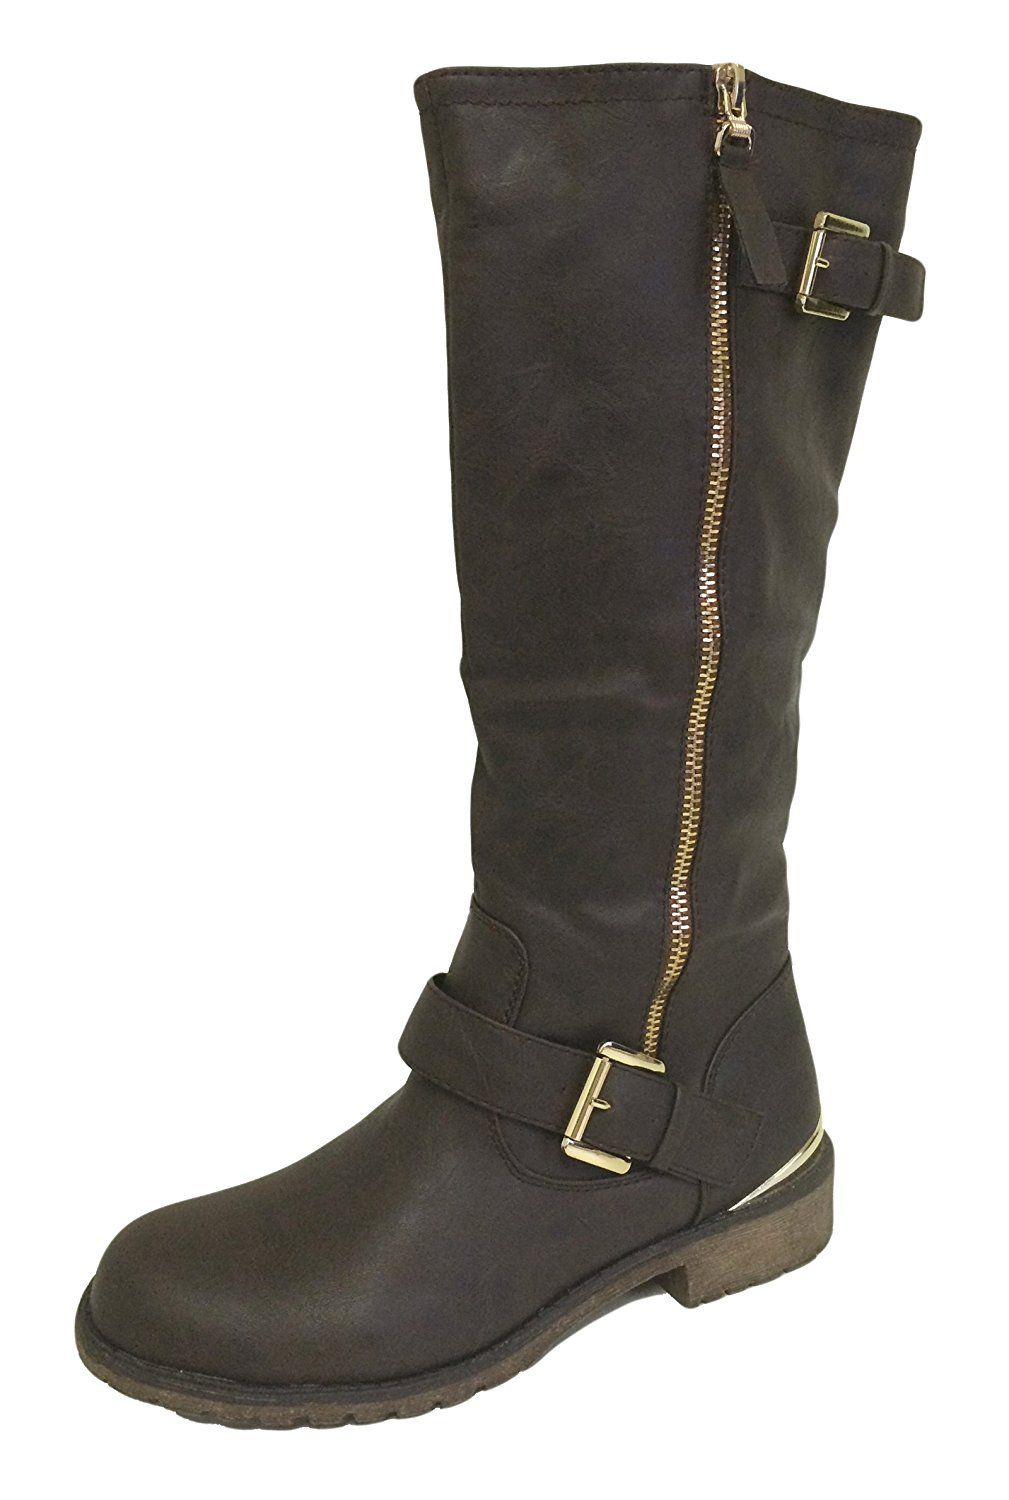 J-Camn Women's Riding Boots Faux Leather Tall Equestrian Knee High Buckle Side Zipper Gold-tone Hardware Mid Calf Straps Shoes, Black, Tan, Brown *** You can find out more details at the link of the image.